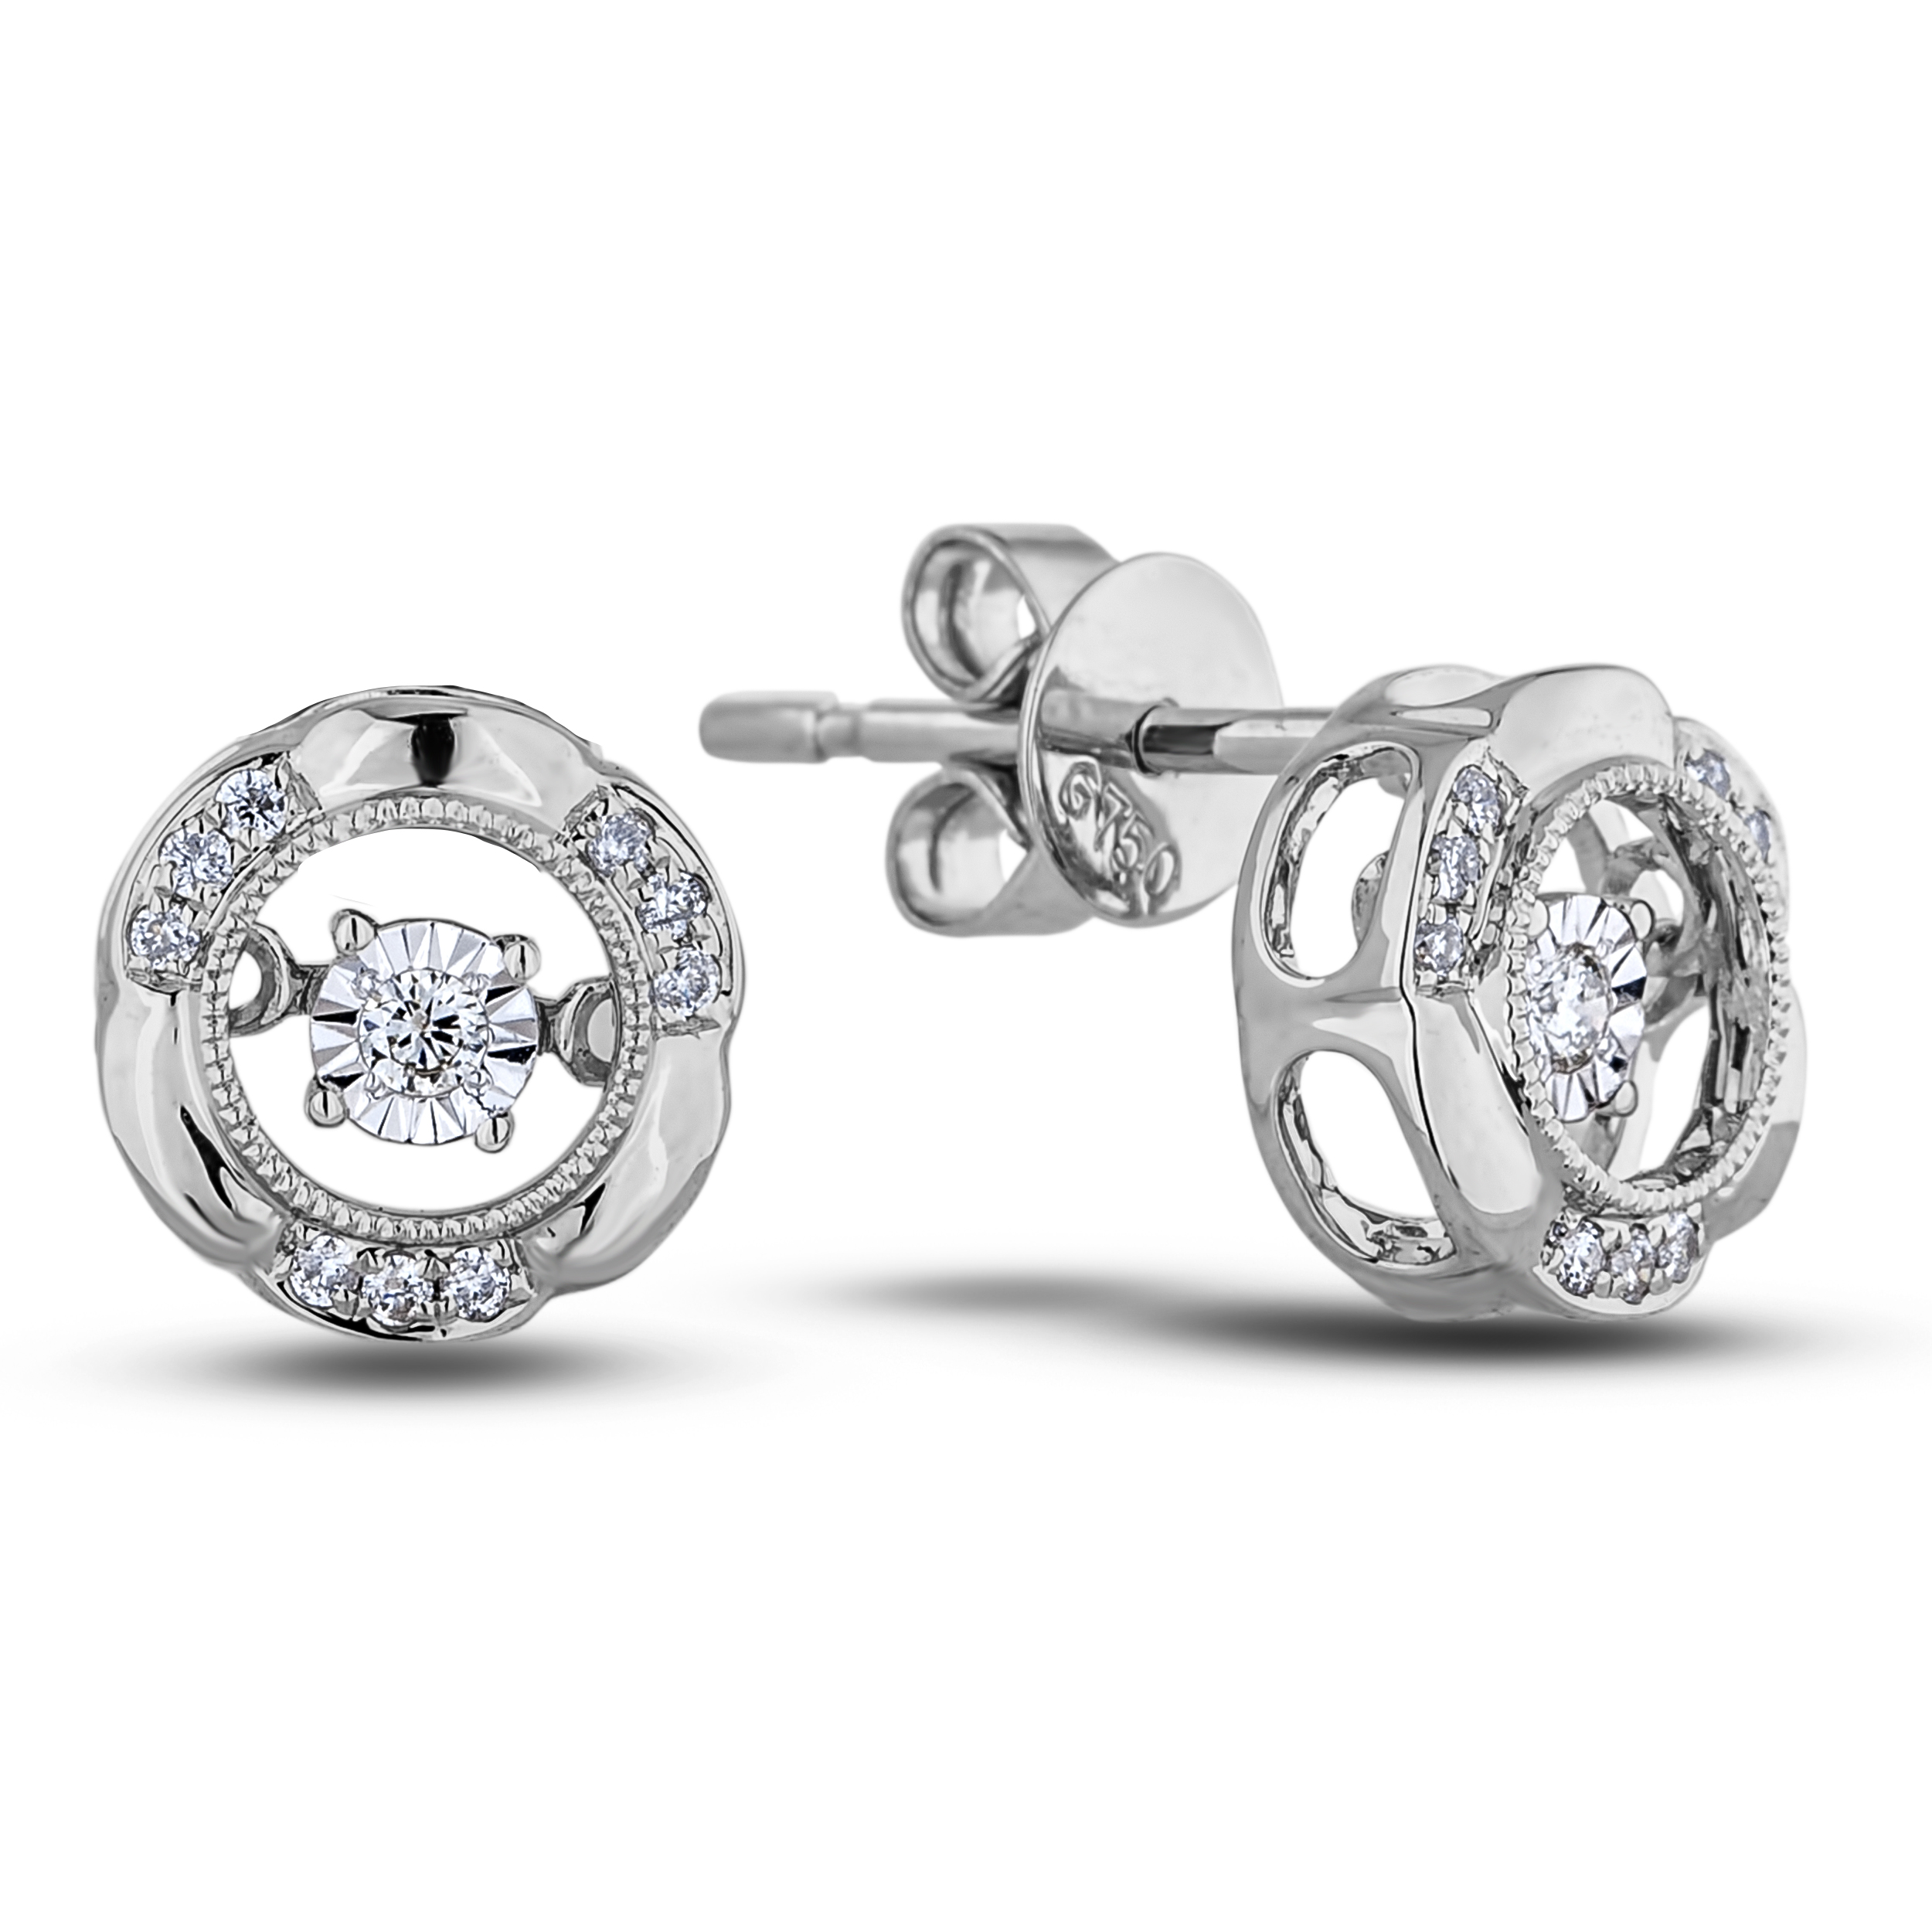 Diamond Stud Earrings AFCE19880015RA (Earrings)